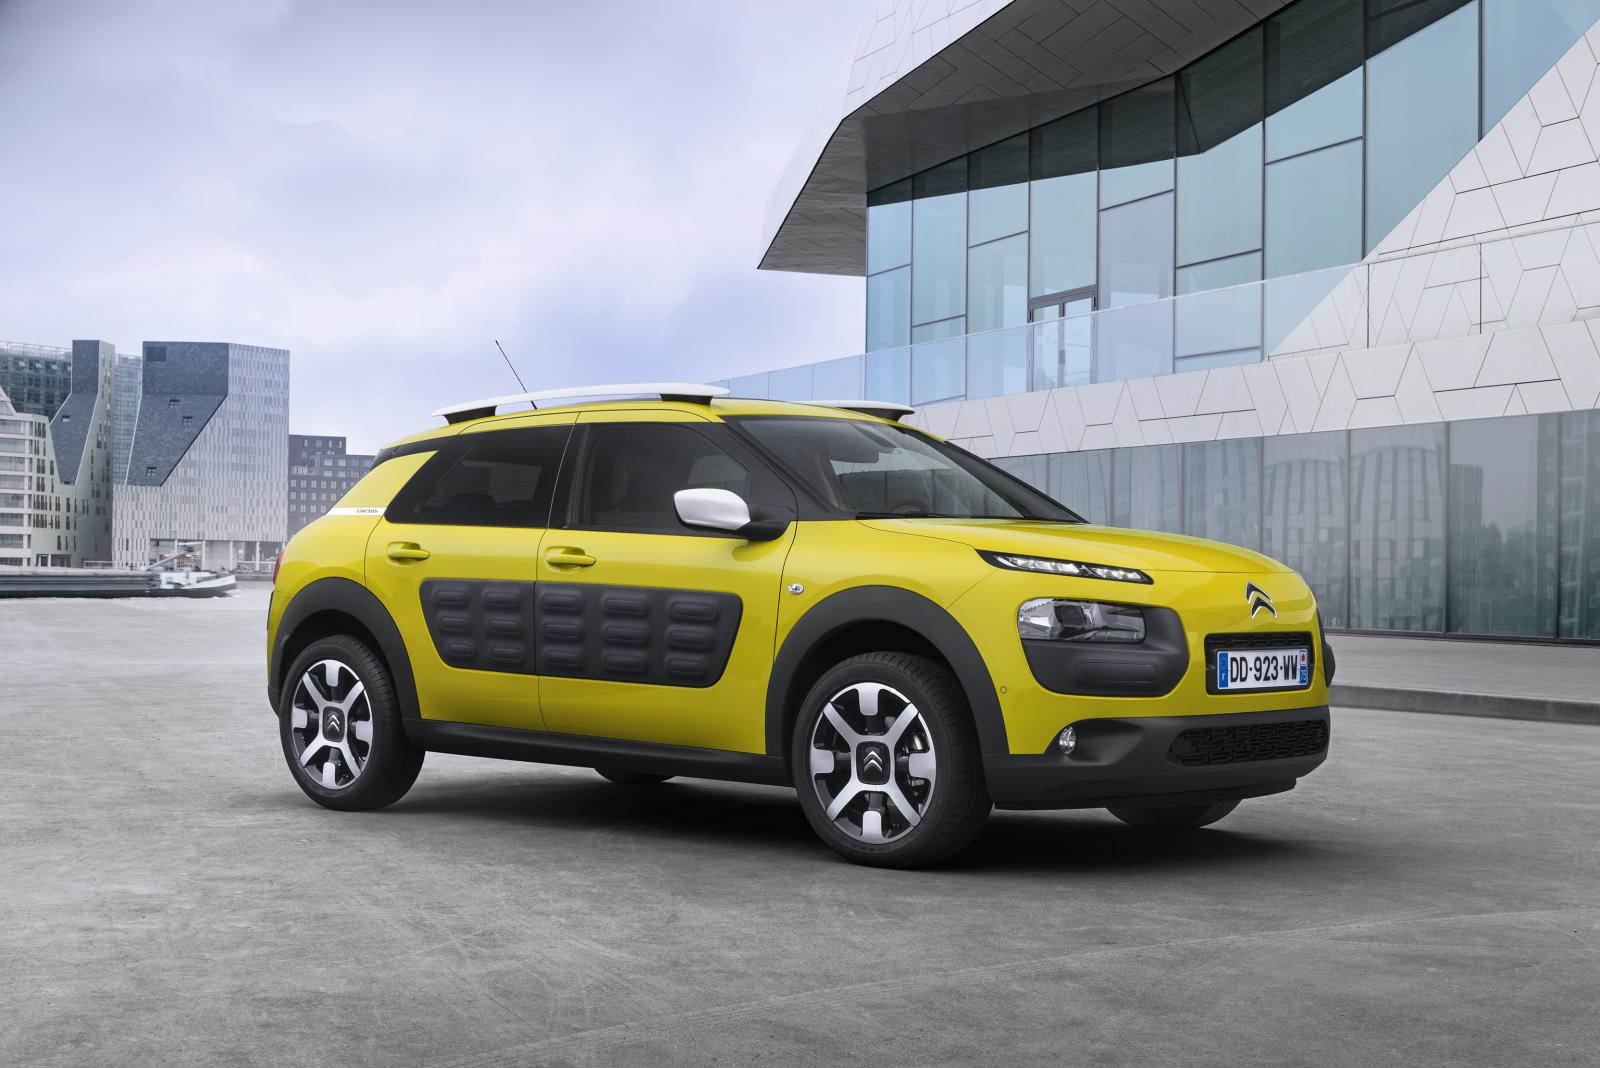 C4 Cactus Feel edition 2014 Amsterdam 3/4 front